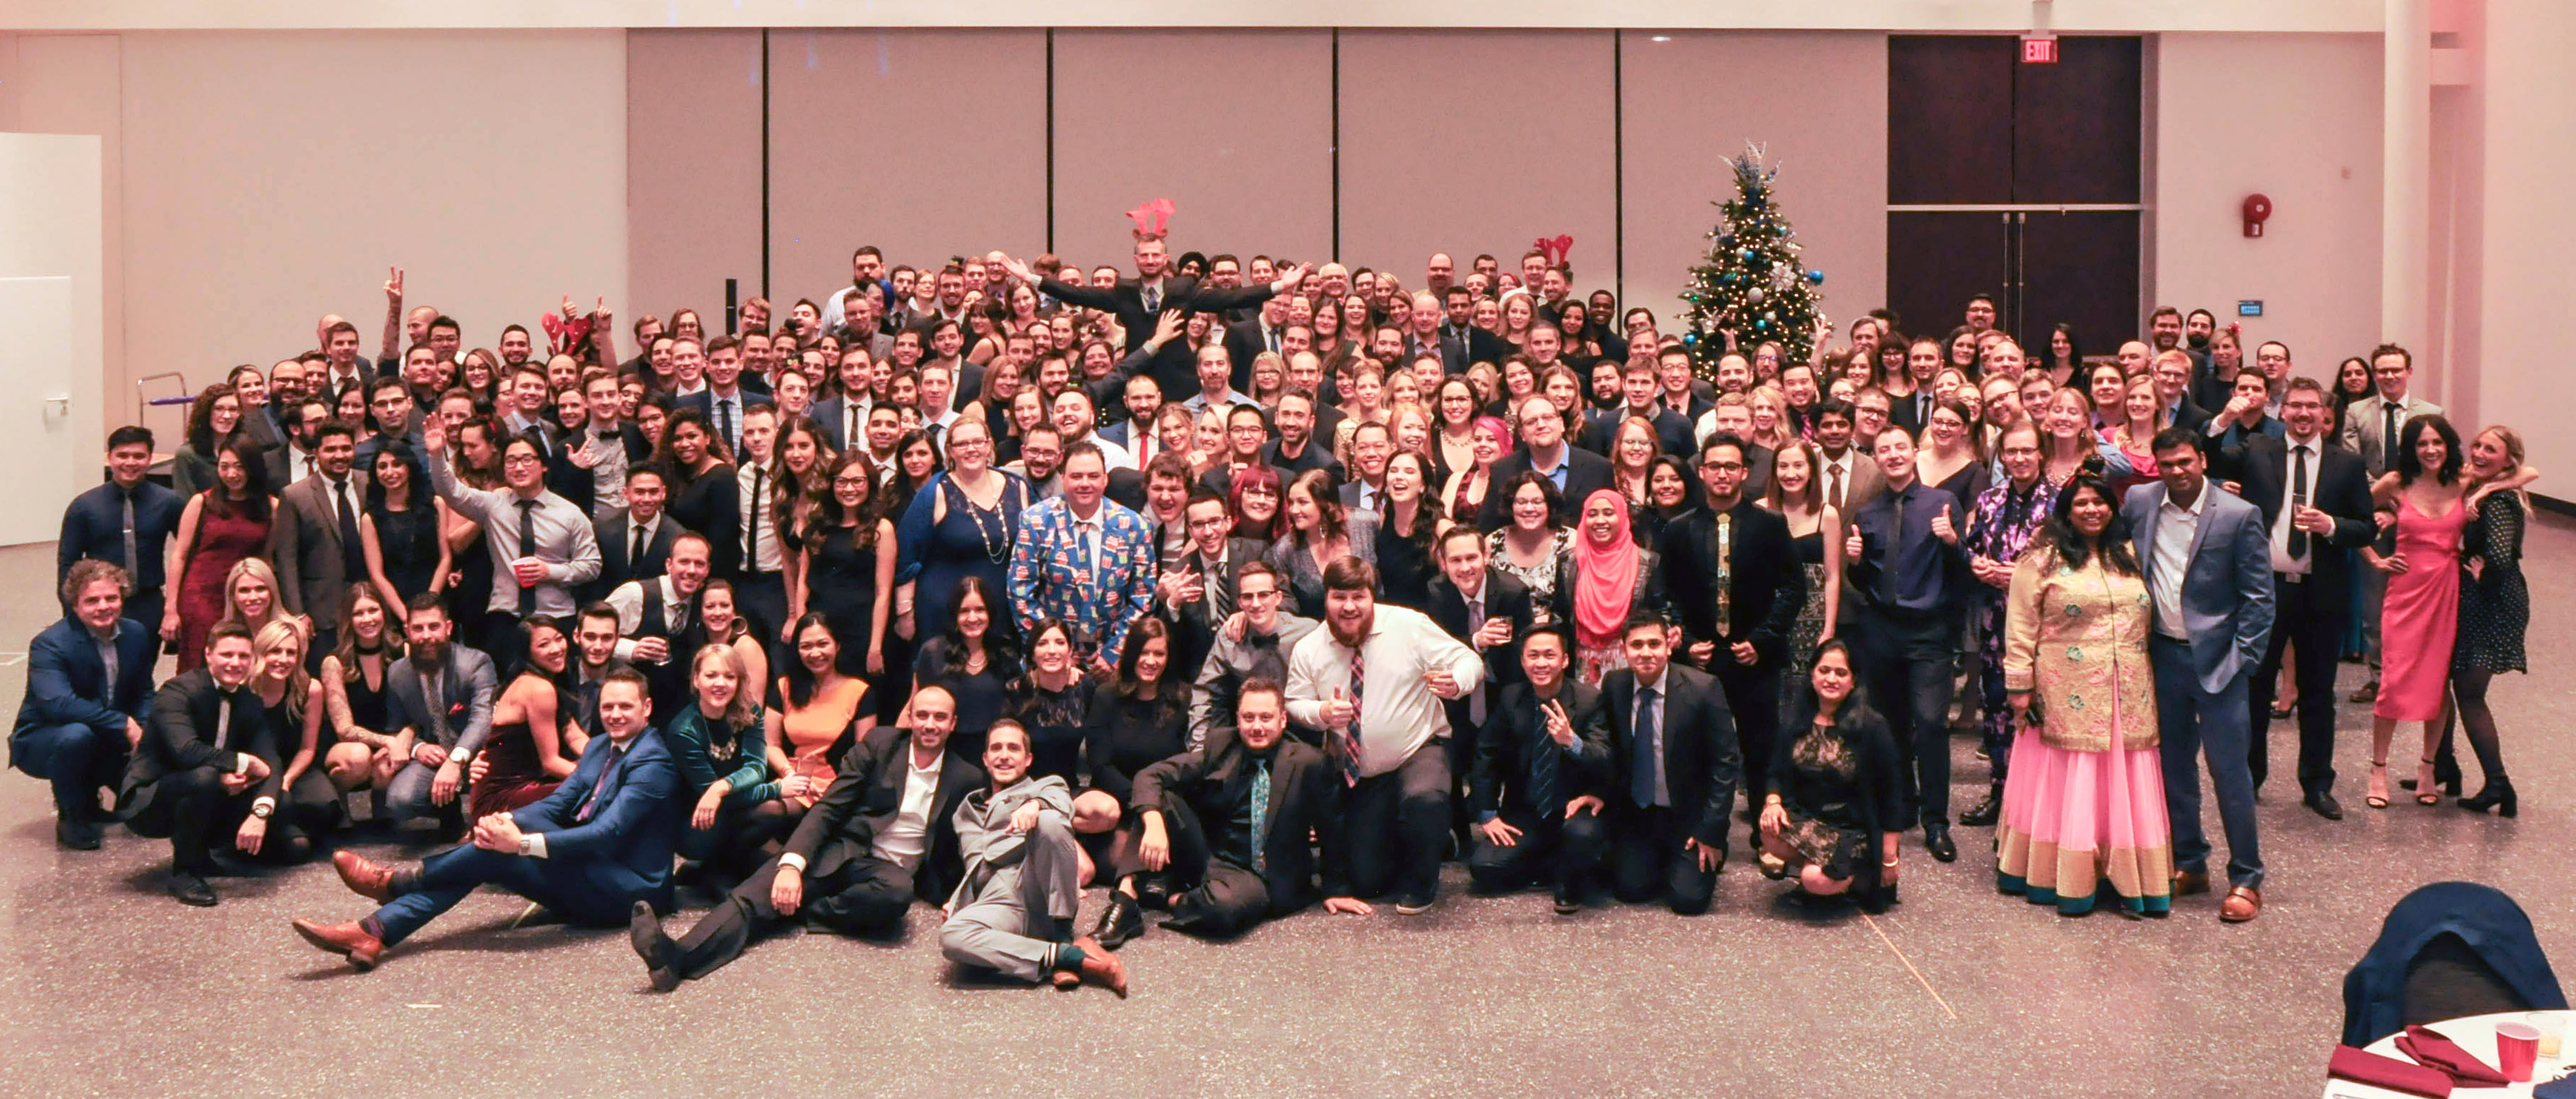 Another awesome Christmas Party in the books